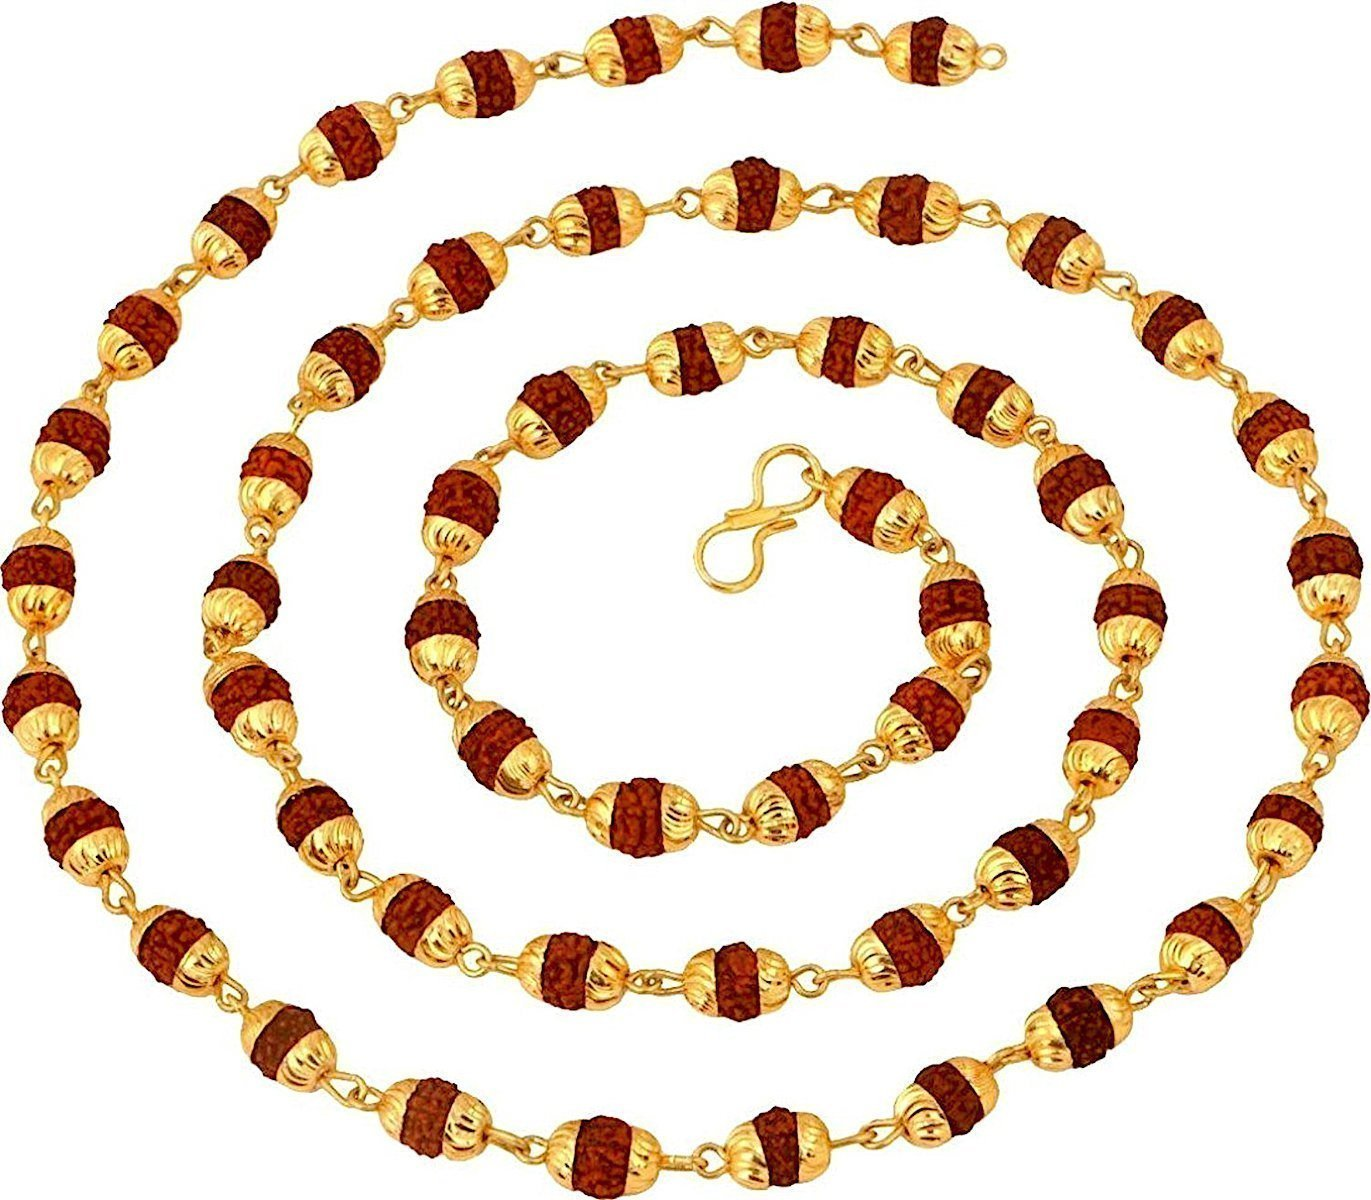 Rudraksh mala beads sacred Rudraksha beads 5 Mukhi Japa Mala Rosary Golden Cap Meditation mala Yoga necklace - Rudraksha sacred necklace Mala beads - Rosary pouch - Nepal Rudraksha beads - US seller